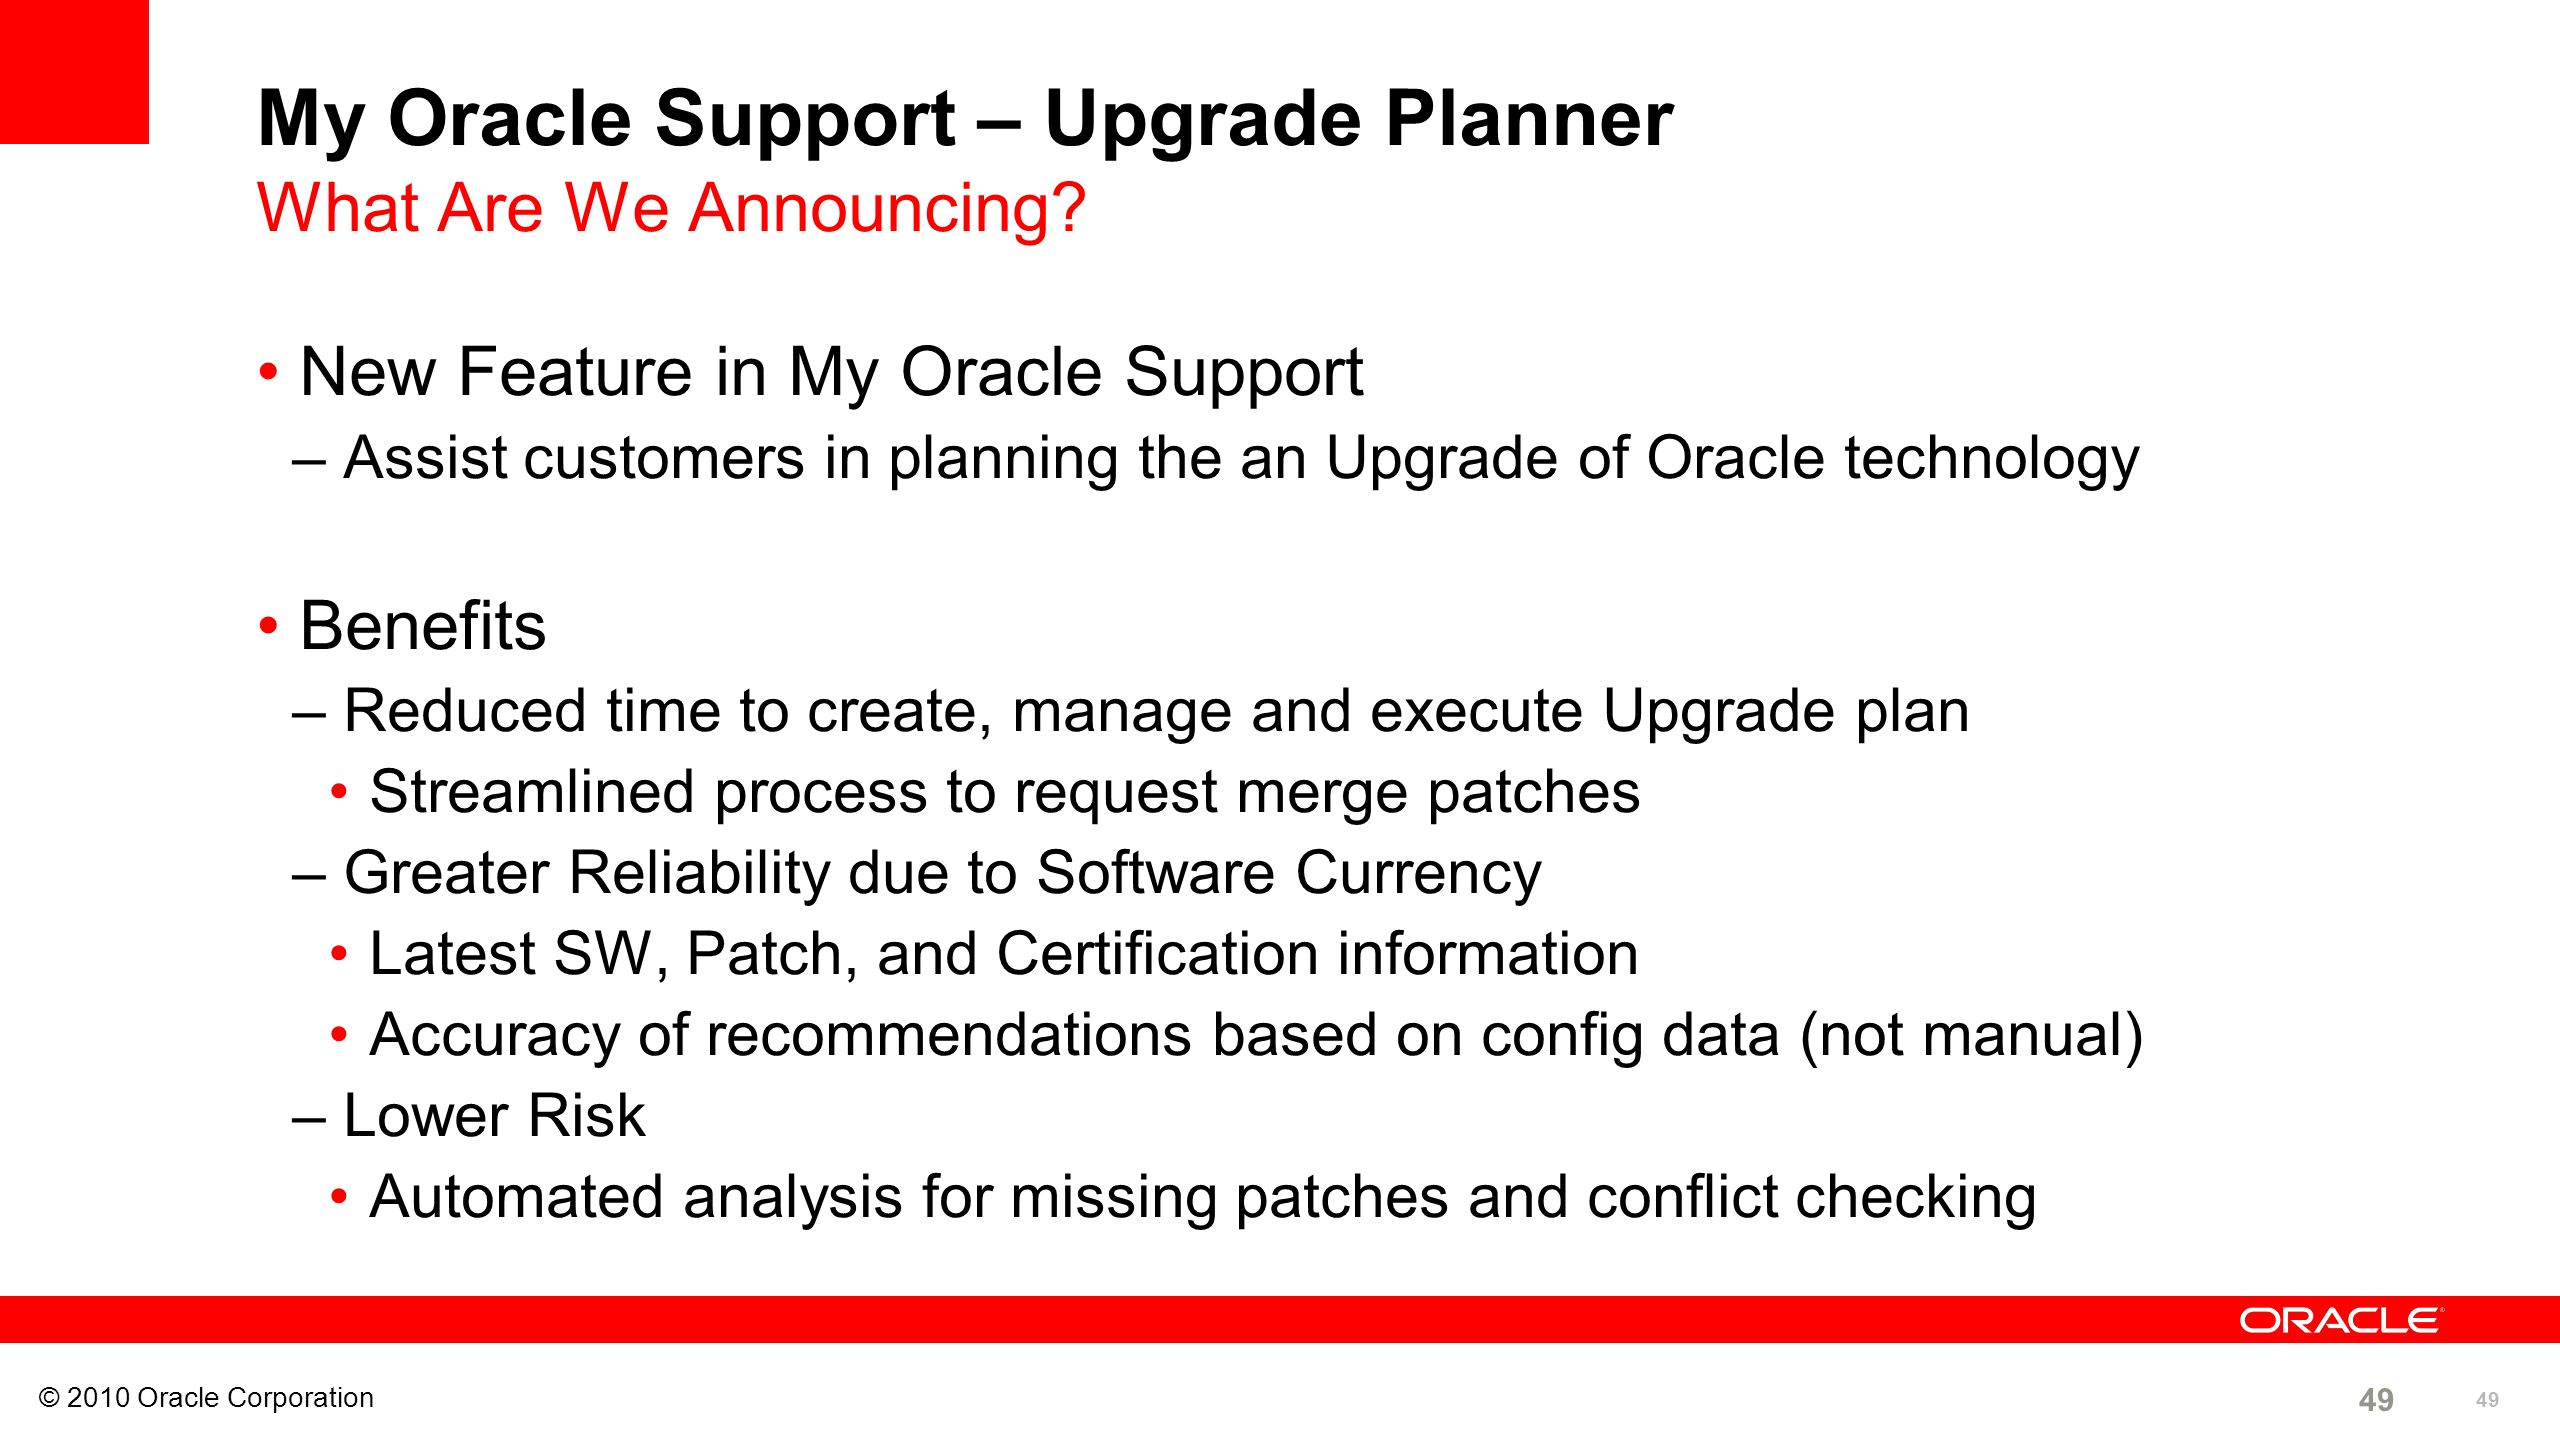 My Oracle Support – Upgrade Planner What Are We Announcing